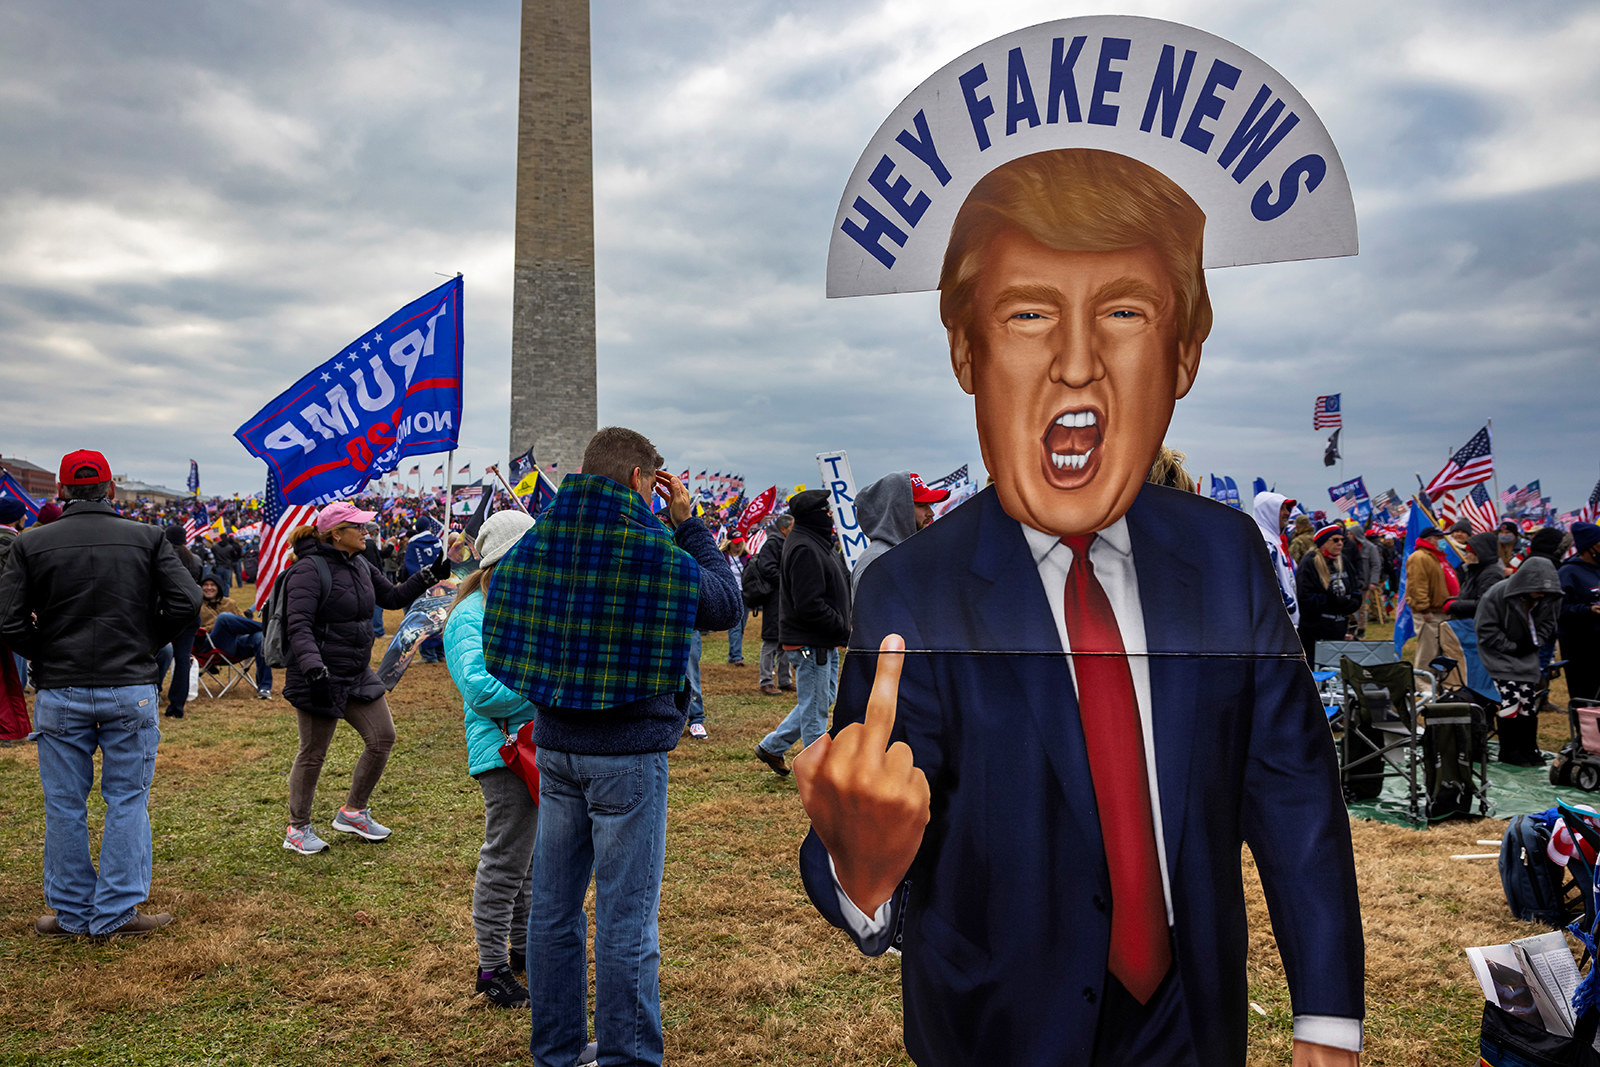 """People stand near a cardboard cutout of Trump with a sign reading """"Hey Fake News"""" over his head as he flips off the camera"""